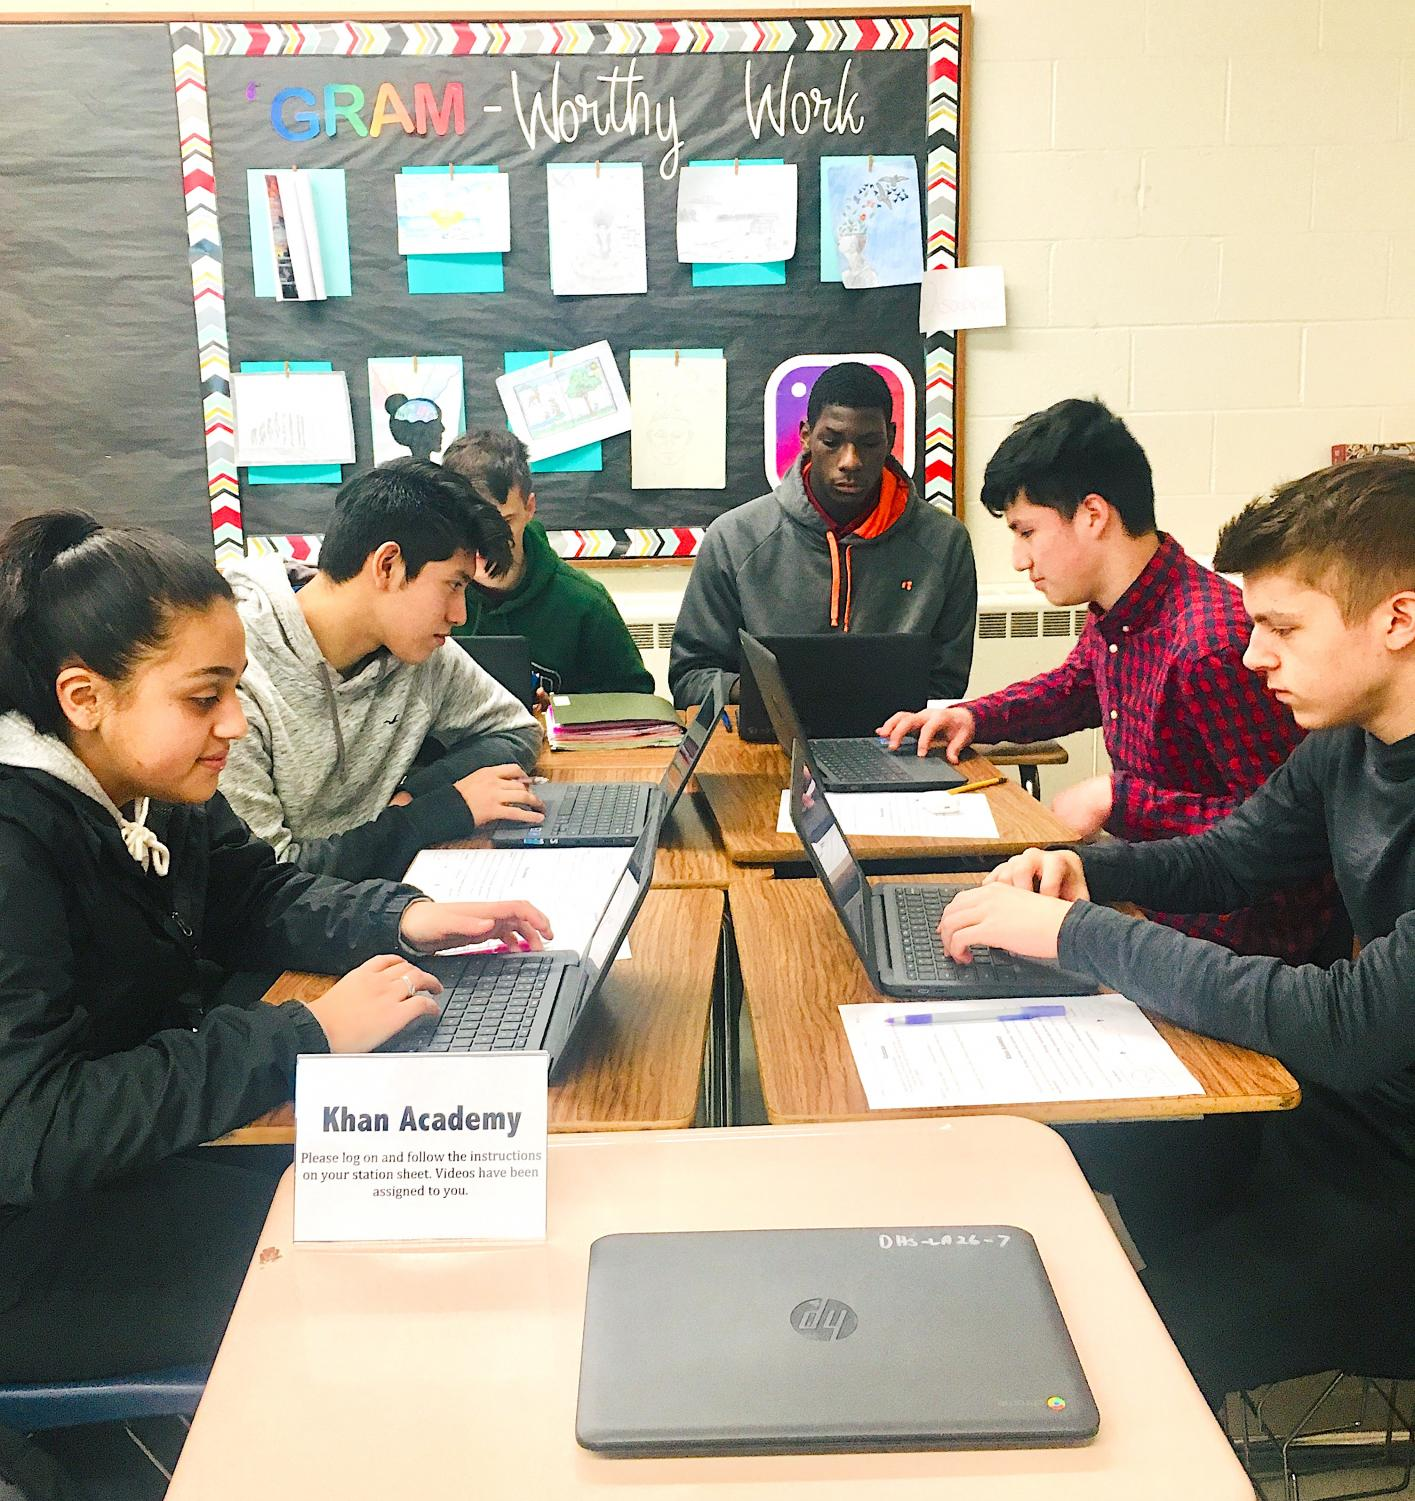 From left, juniors, Ashley Amigon, Anthony Salinas, Nicholas Alfidi, Masta Joyner, John Rodriguez-Galarza, and Cameron Tate in Alexandrea Plante's English III class use new Chromebooks to work on a Khan Academy exercise during class.